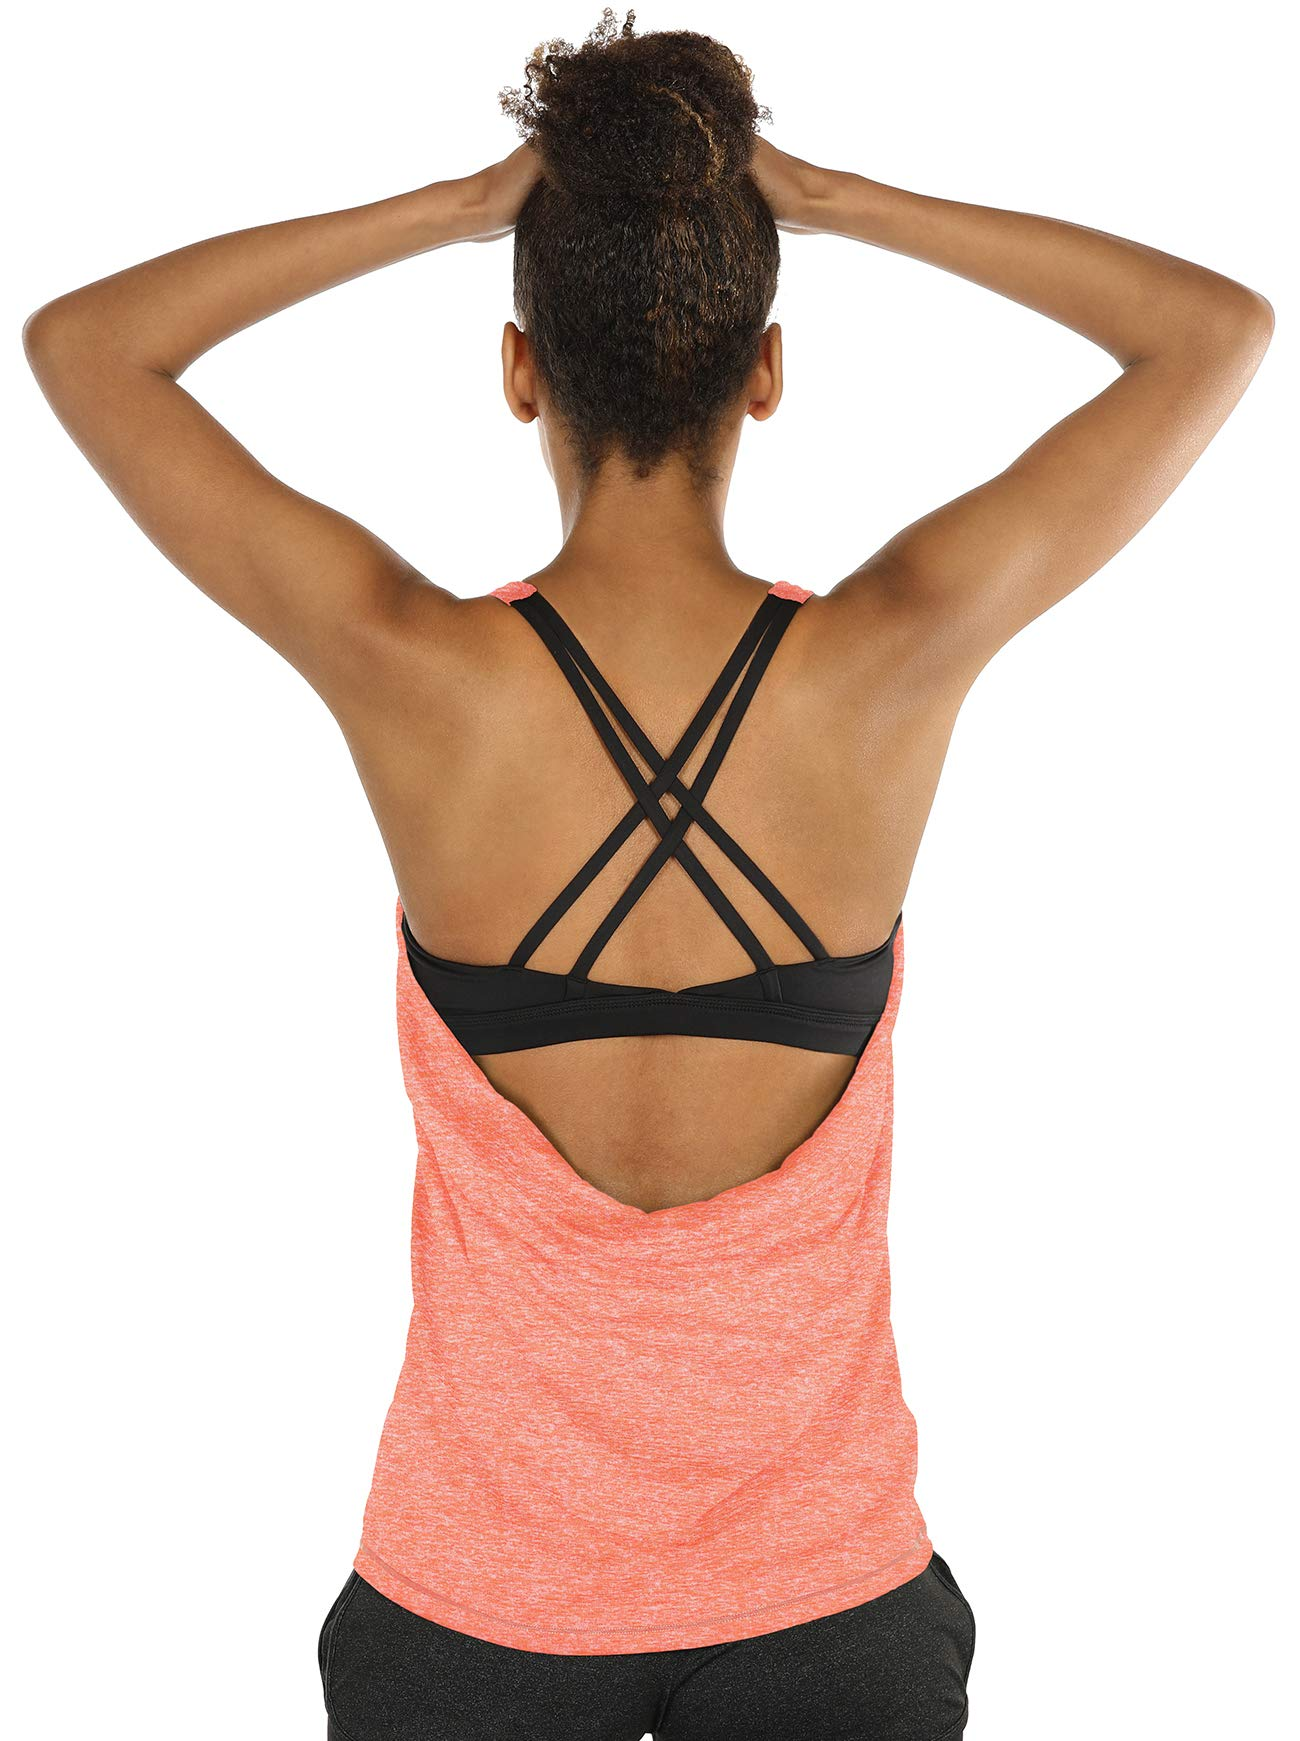 icyzone Yoga Tops Workouts Clothes Activewear Built in Bra Tank Tops for Women (S, Peach)